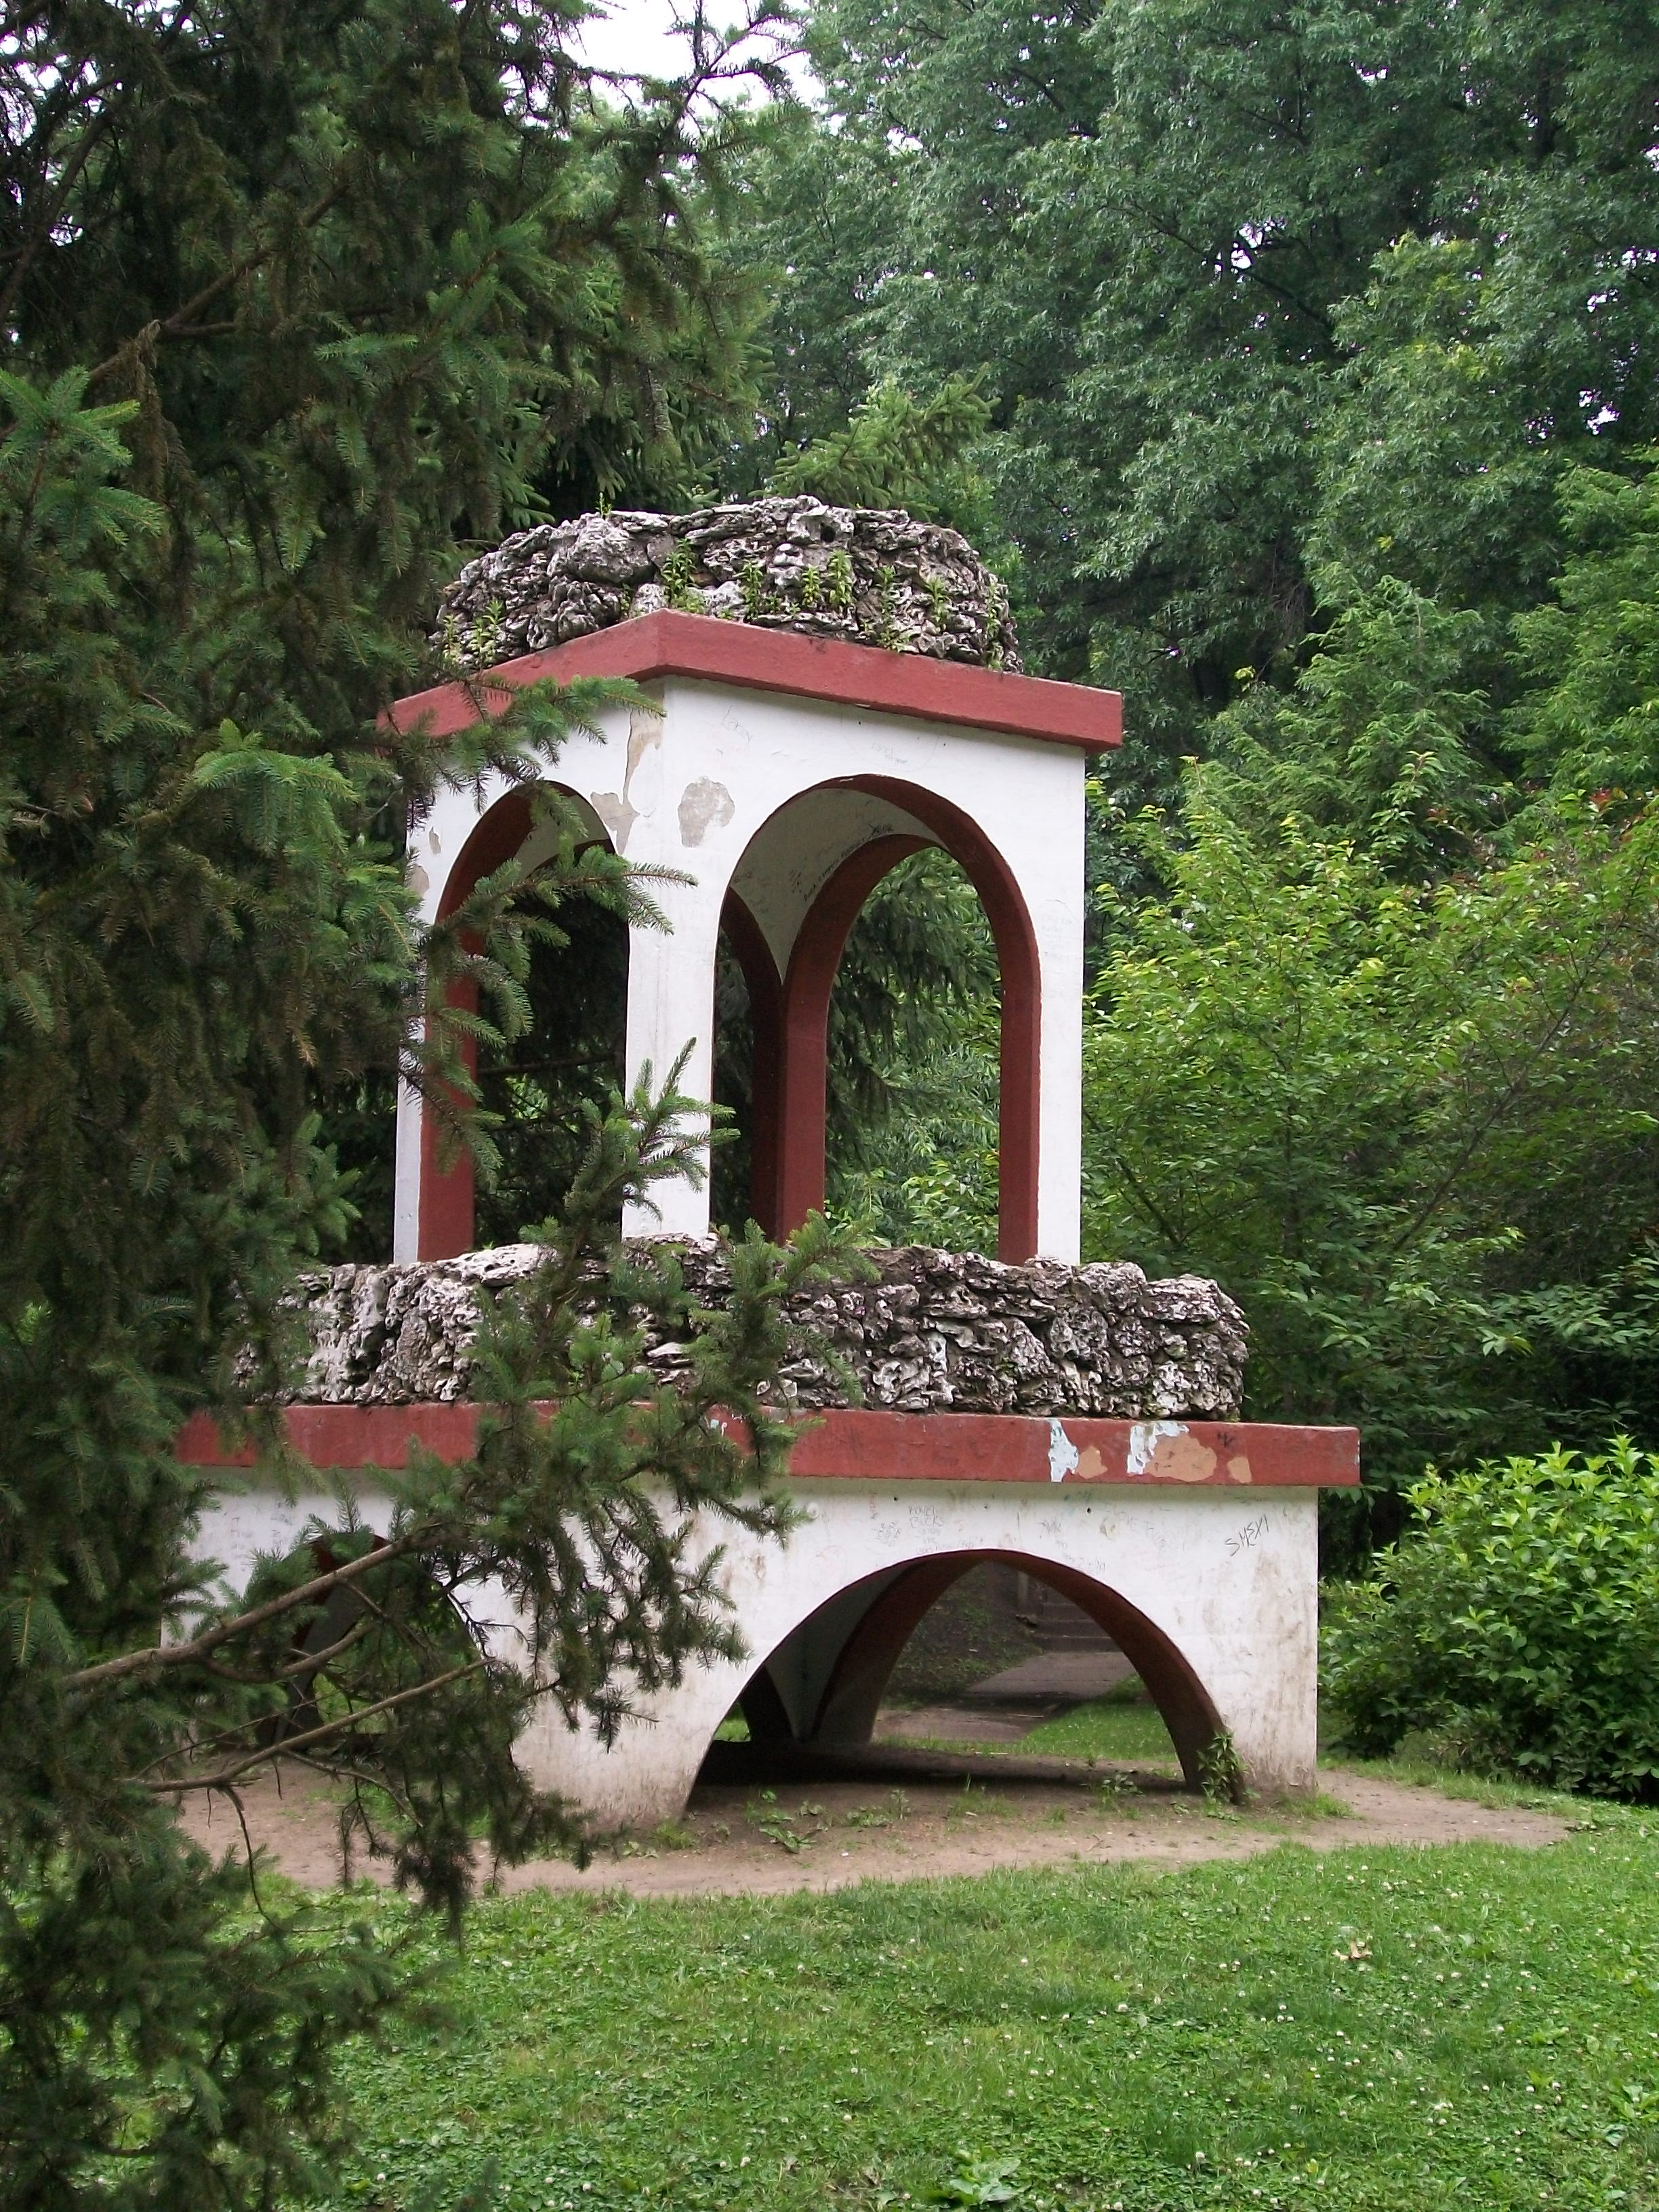 The old diving board structure in the sunken garden - formerly the first swimming pool